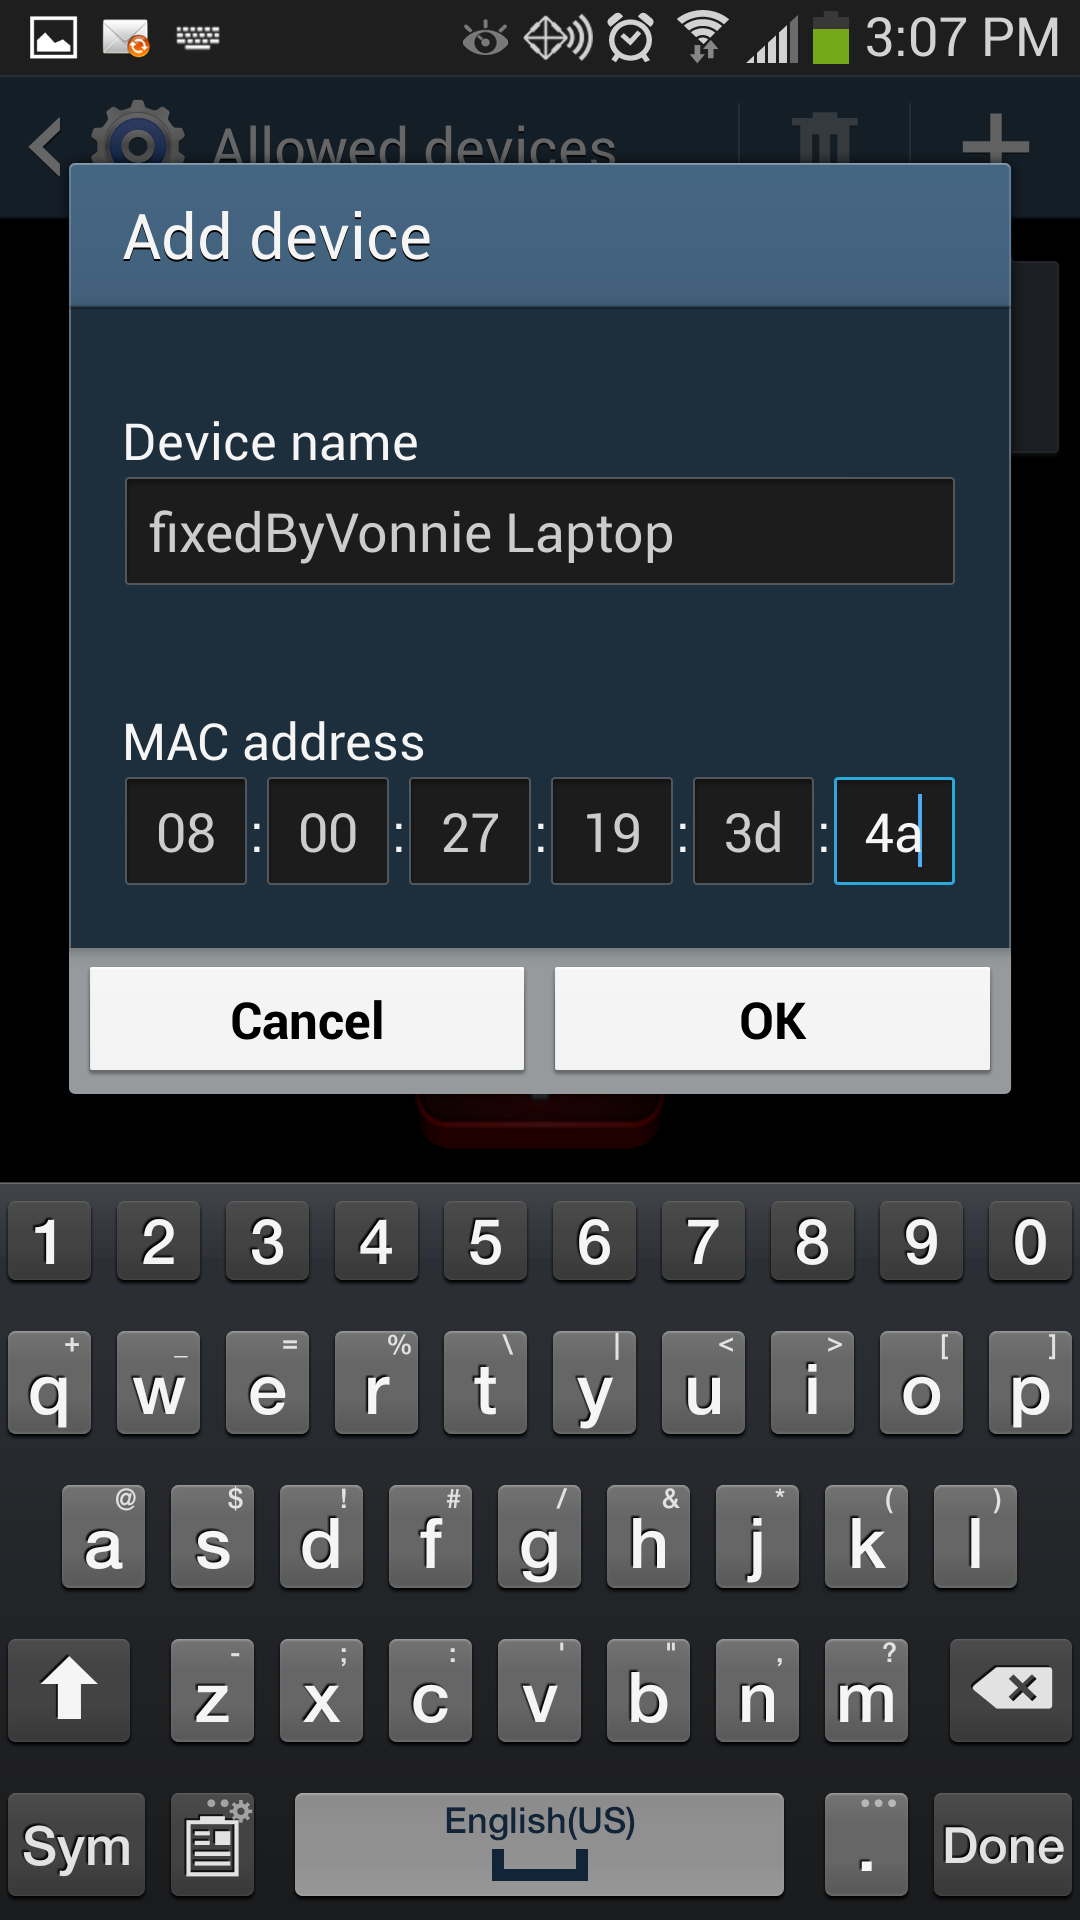 Phone How Do I Use My Android Phone As A Hotspot how to turn your galaxy s4 into a mobile hotspot fixedbyvonnie